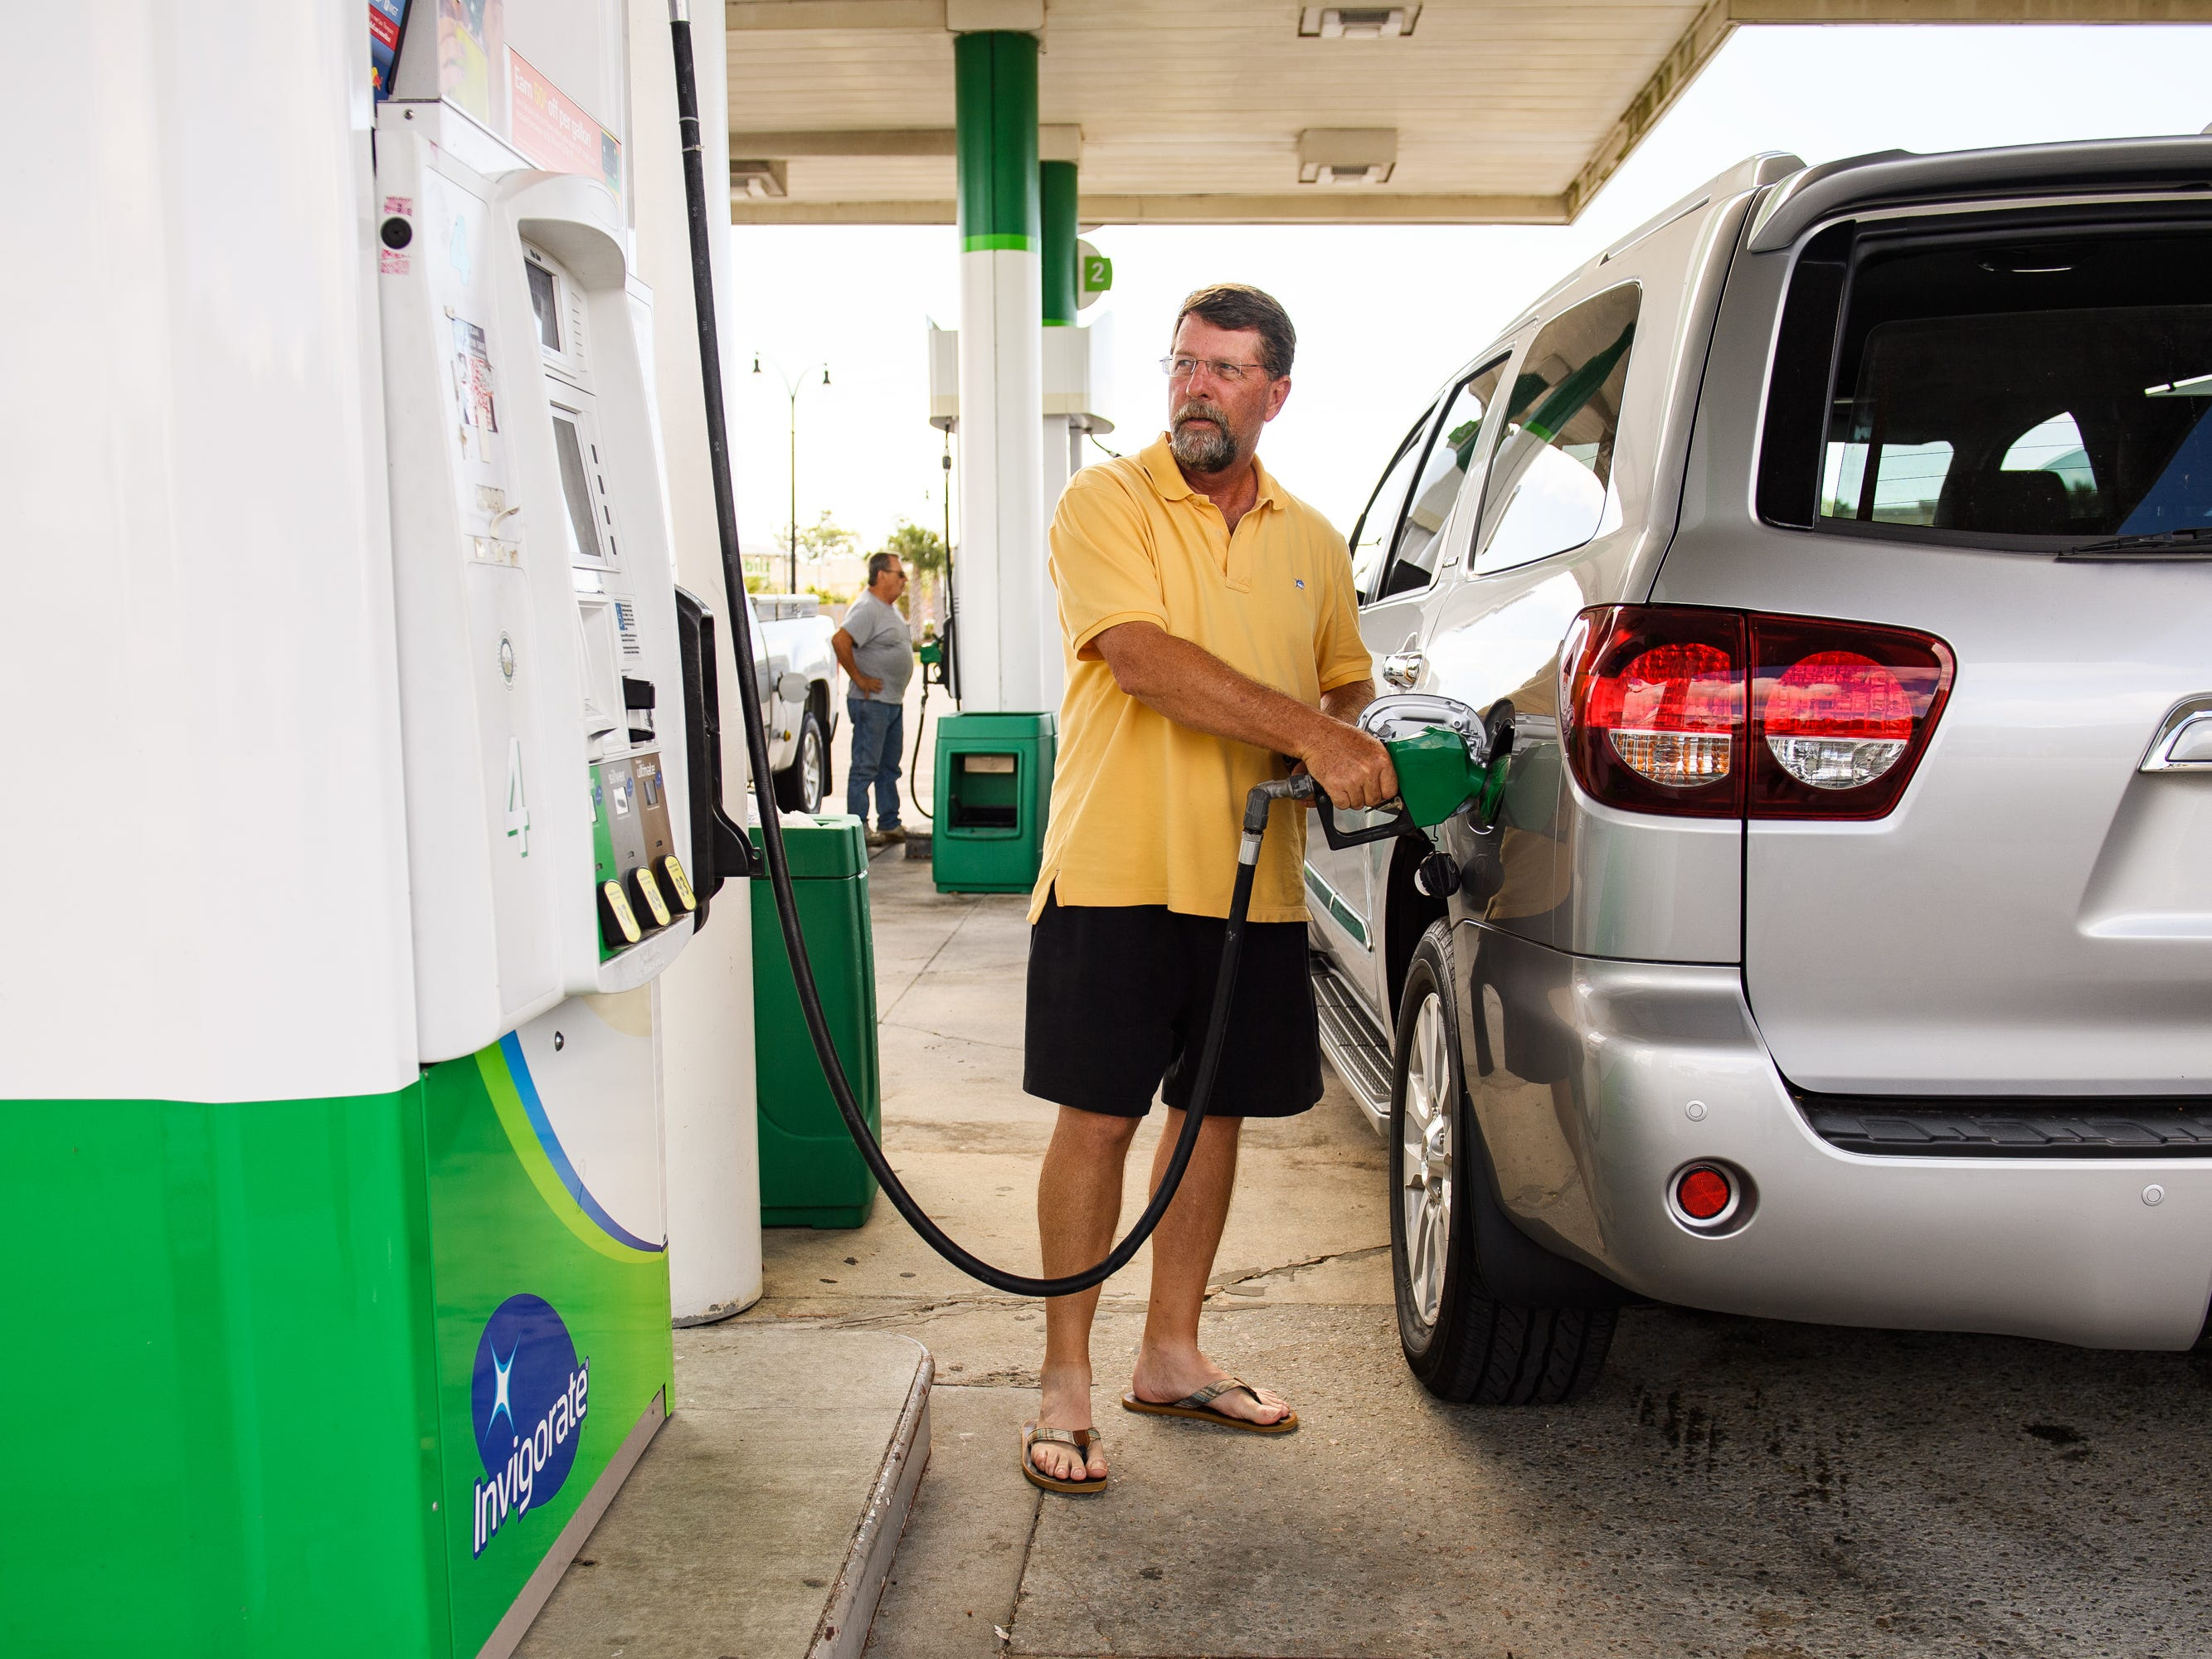 David Fries of North Myrtle Beach fills up his vehicle on Tuesday, Sept. 11, 2018, days before Hurricane Florence is expected to hit the coast of North and South Carolina. Fries said he will be staying at his home with his pets, but his wife and mother in law will be evacuating.  (Via OlyDrop)